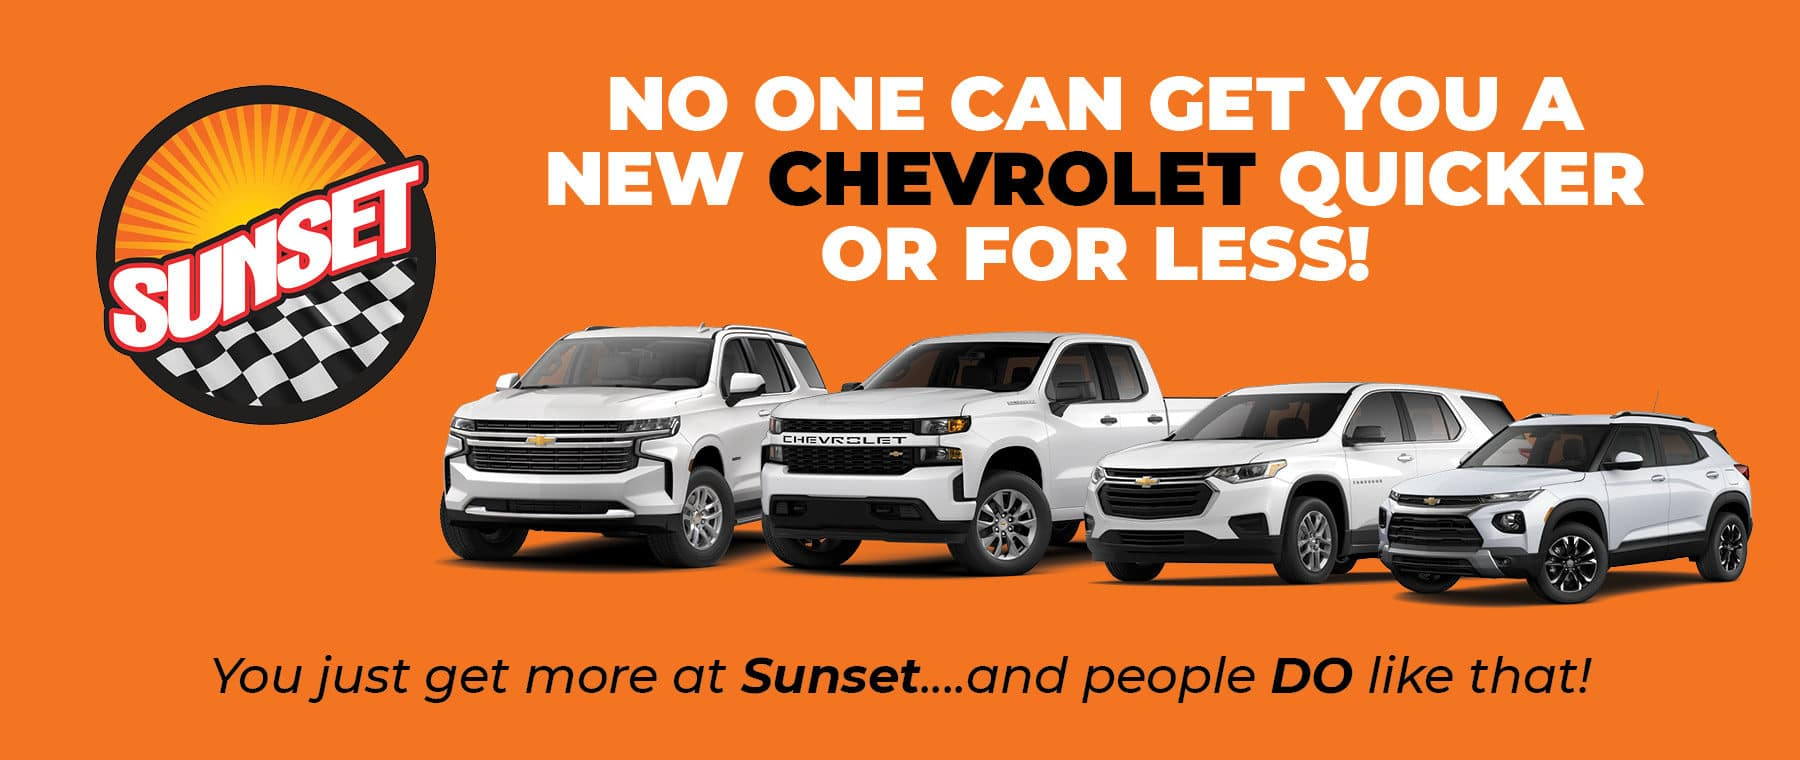 No One Can Get You A New Chevrolet For Less!